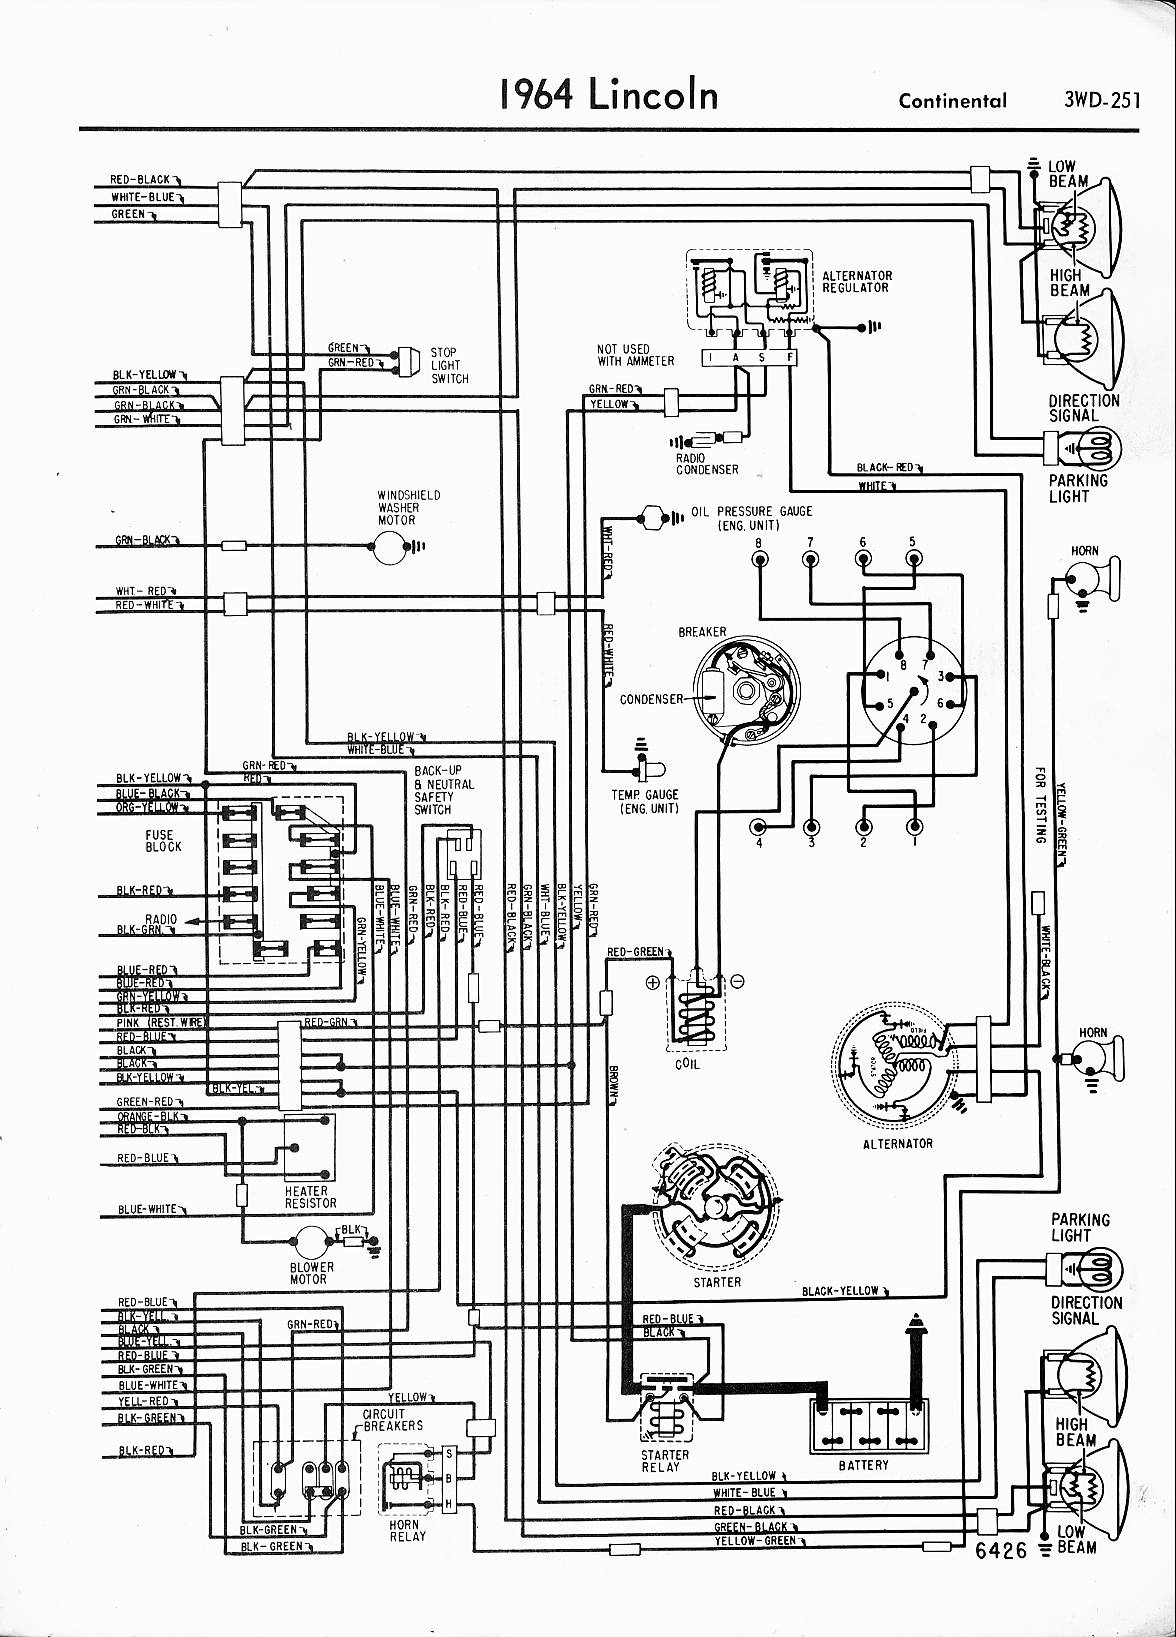 hight resolution of lincoln wiring diagrams 1957 1965 1985 lincoln continental wiring diagram 1960 lincoln wiring diagram